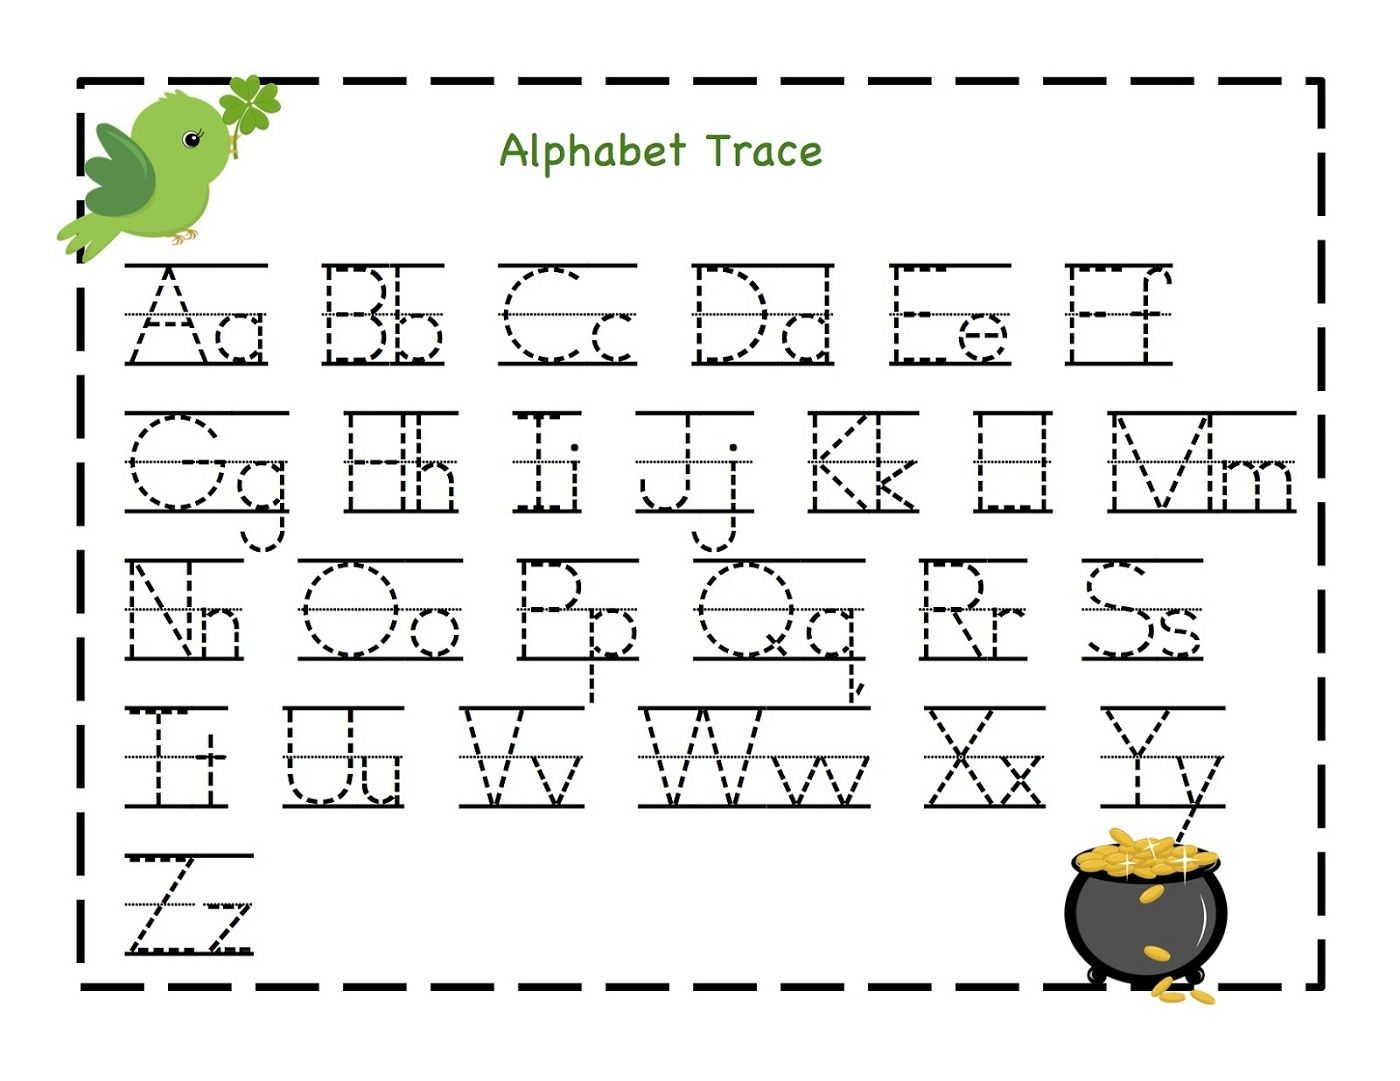 Worksheets Preschool Alphabet Worksheet free printable alphabet letter tracing worksheets kindergarten help your kids learning abc in fun way these traceable to print will learn letters eas